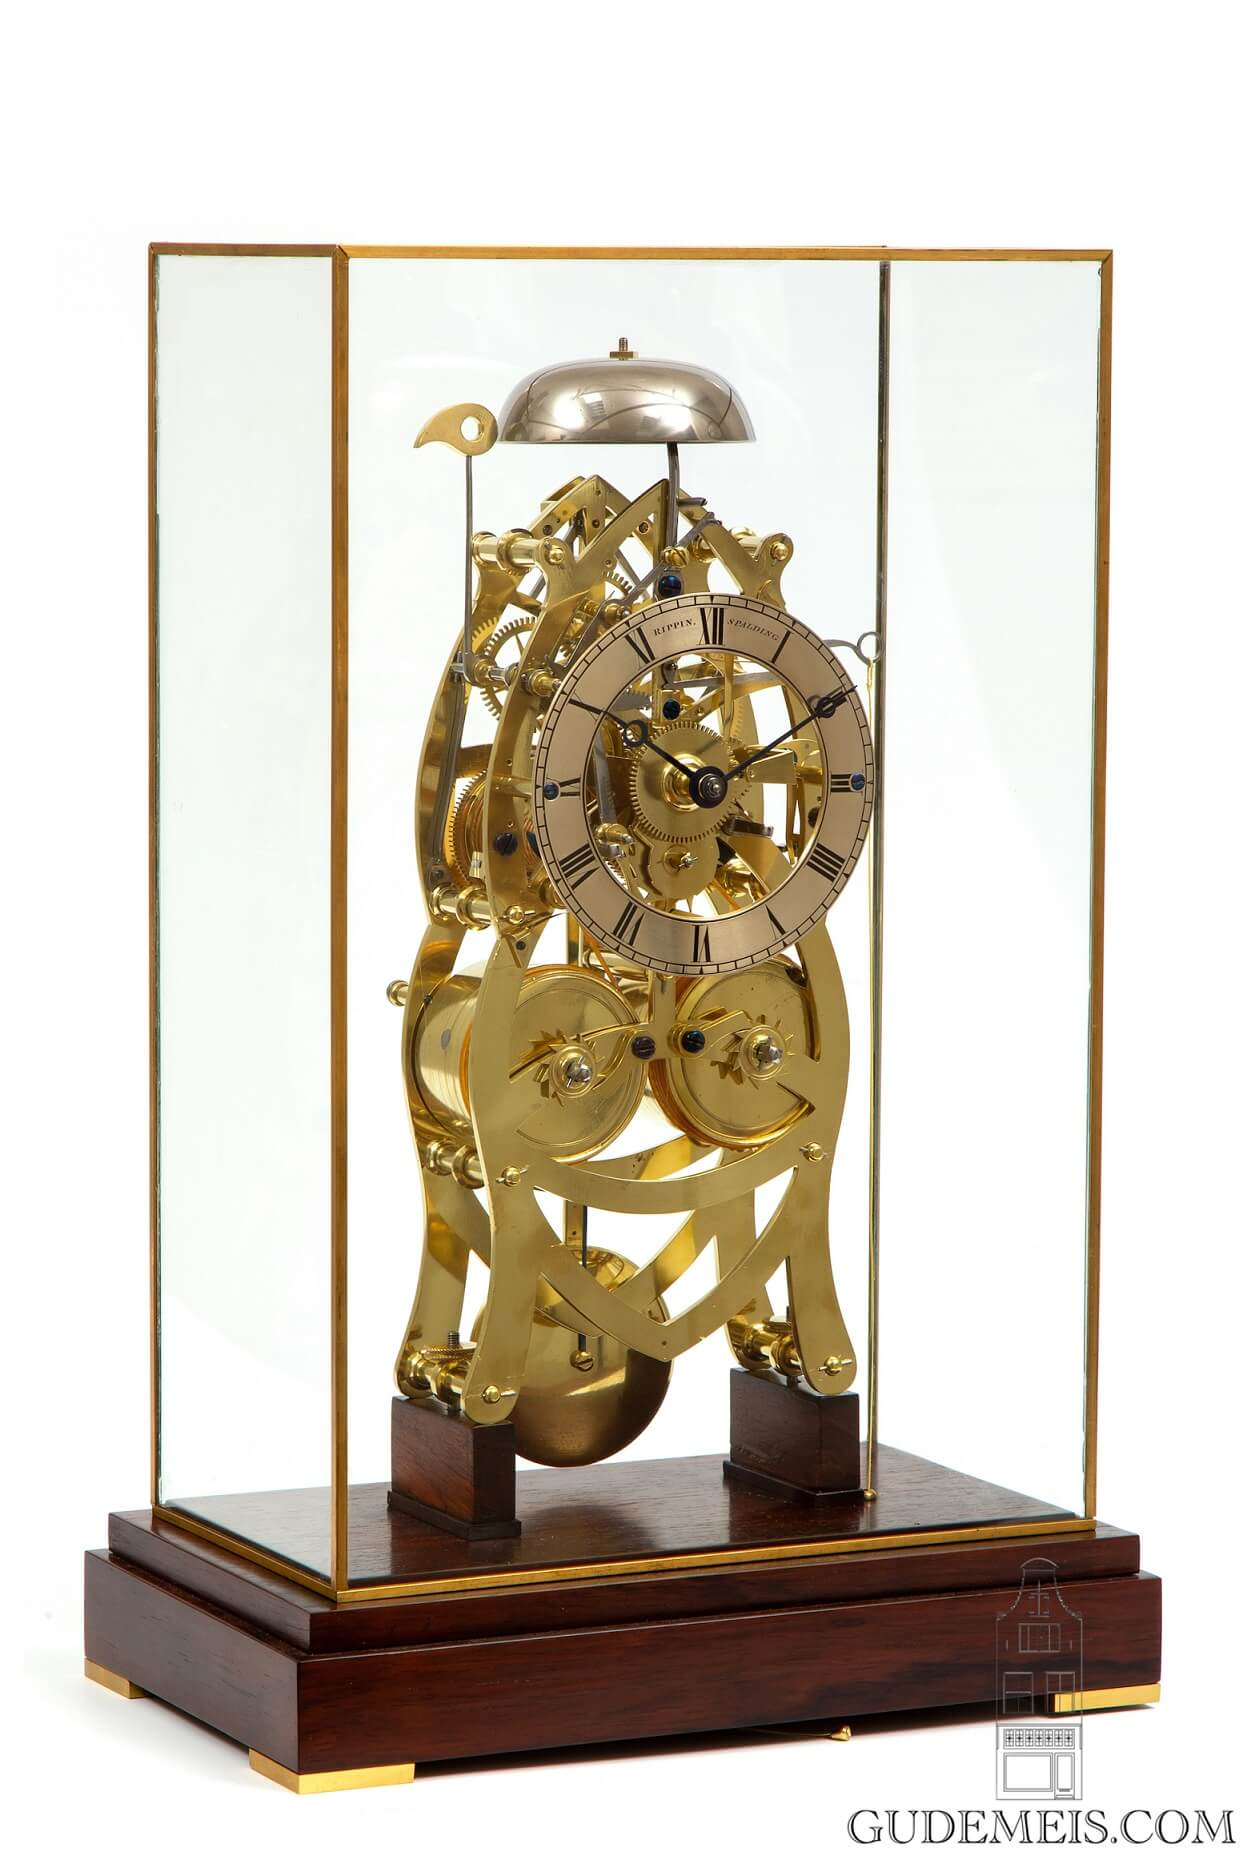 English-brass-skeleton-striking-repeating-fusee-table-antique-clock-rippin-spalding